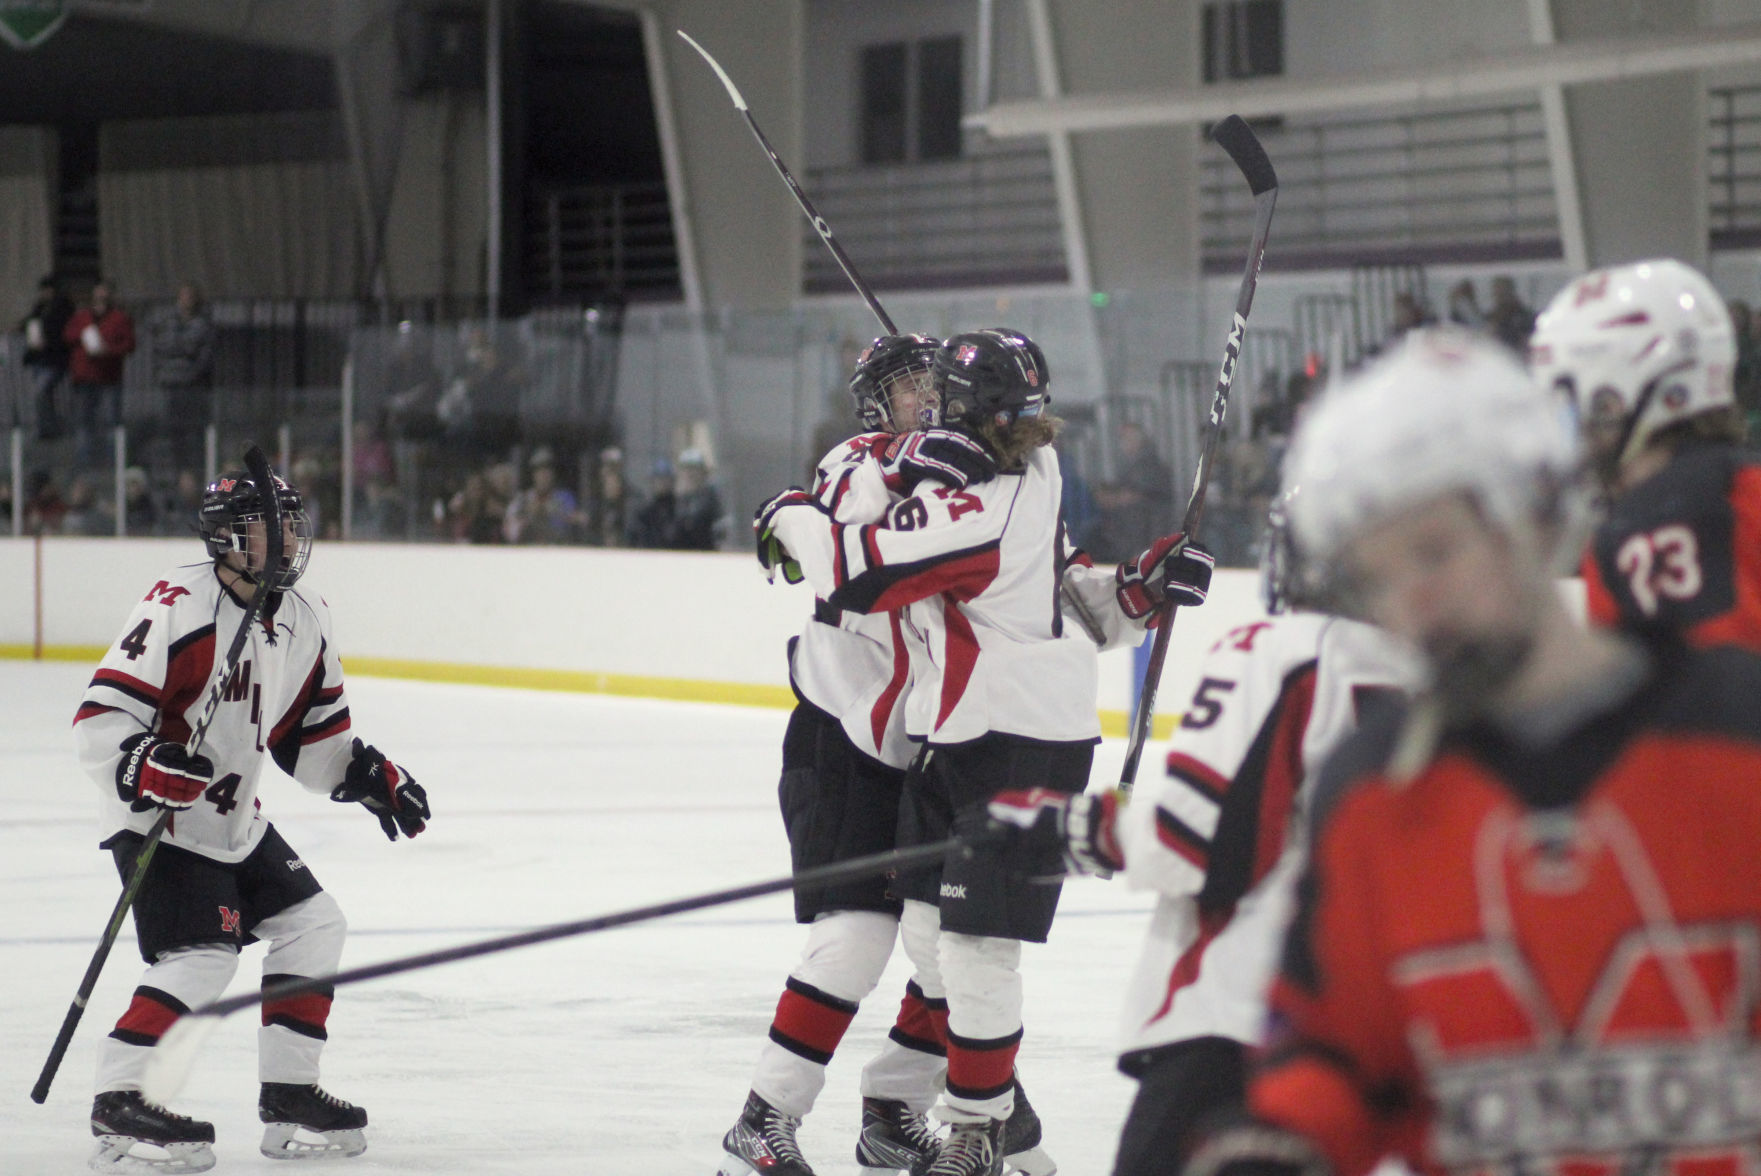 Boys hockey: Red Hawks take down Lakers | Milton Courier ...